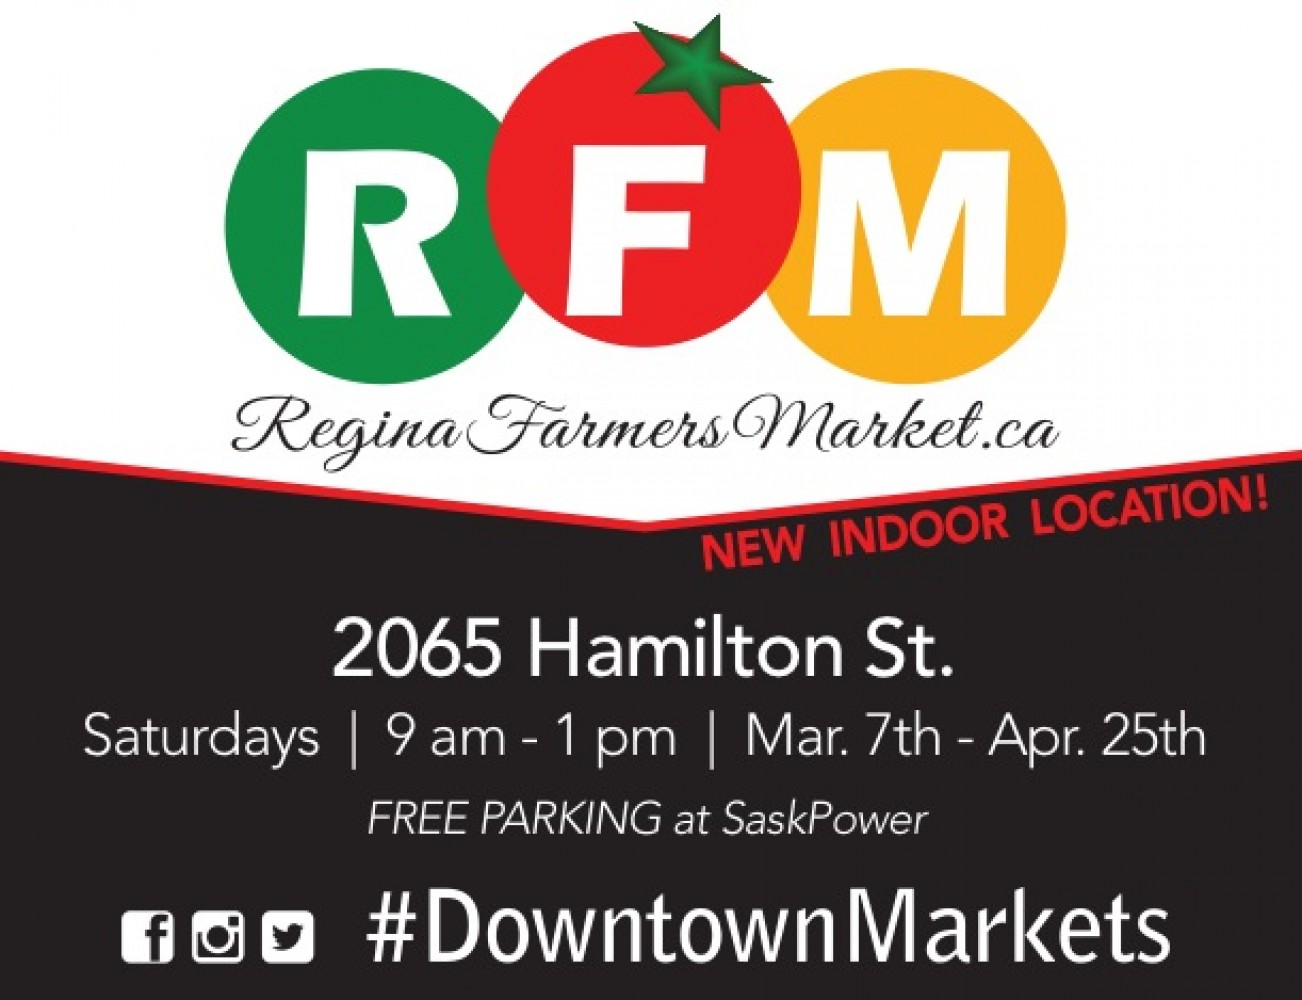 2015 Spring Downtown Markets Media Release!